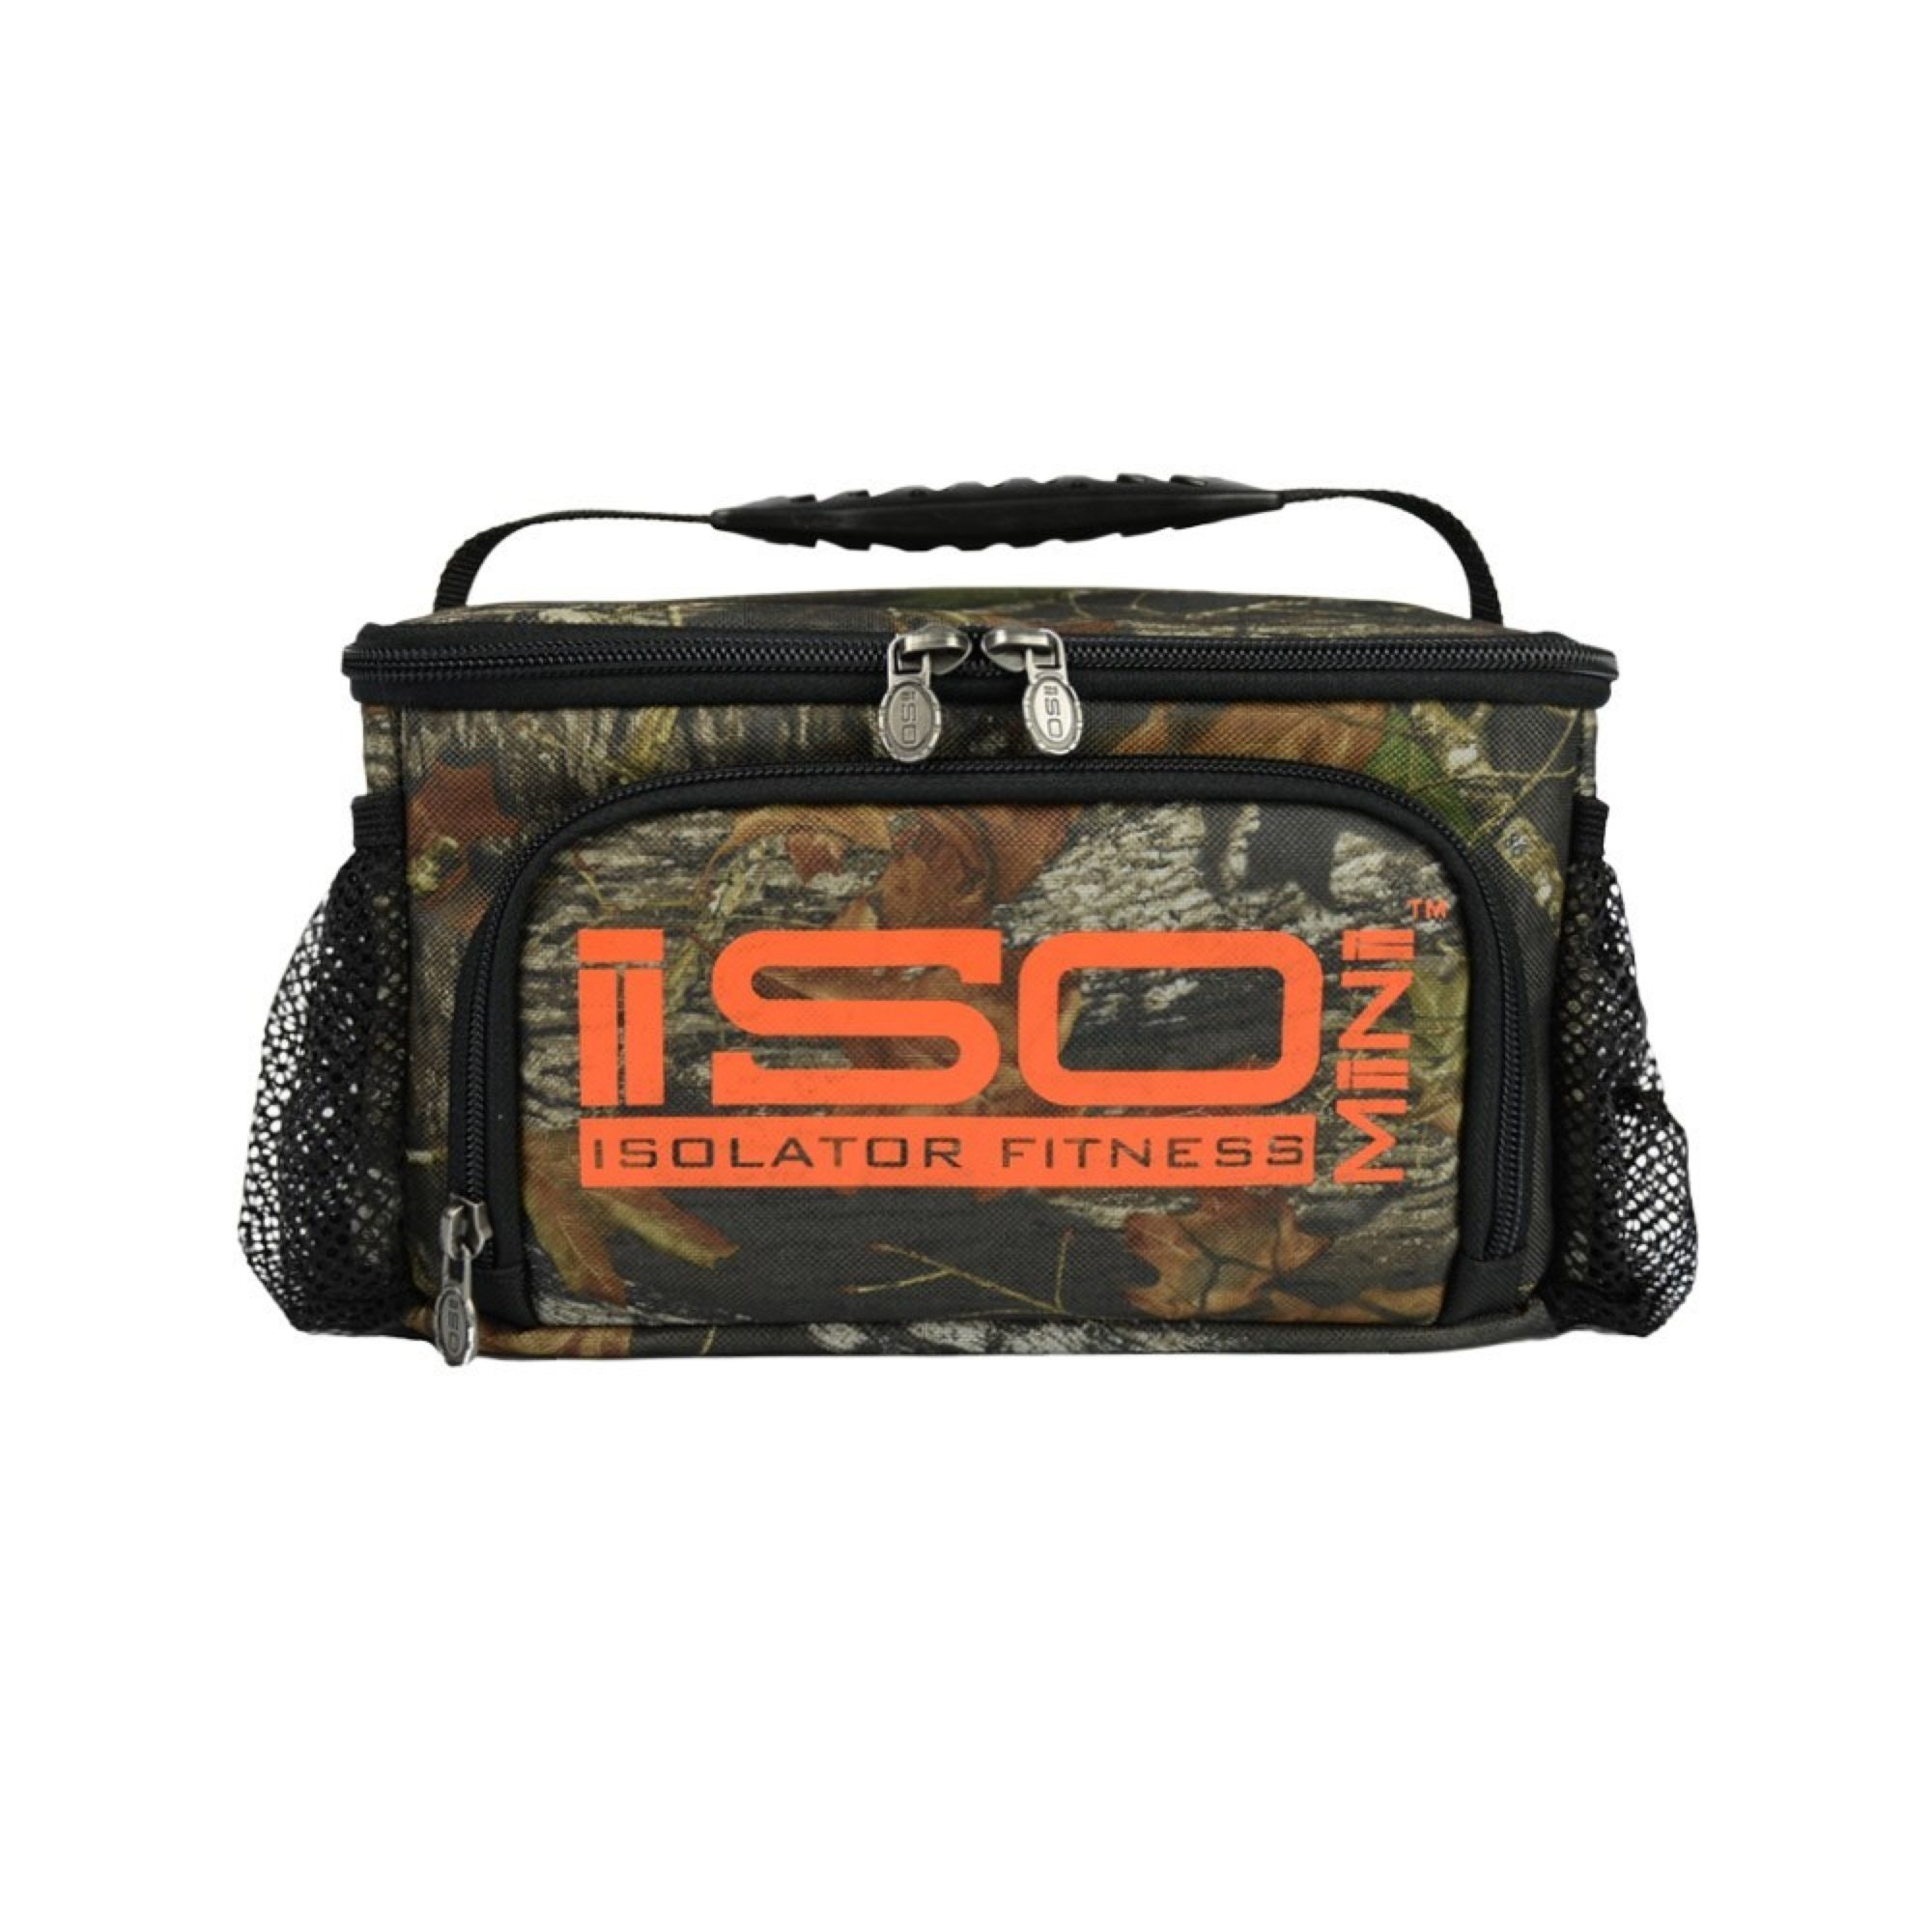 Isolator Fitness Iso Mini Meal Bag Mossy Oak Bags Official Trade Sports Nutrition Distributor Tropicana Whole